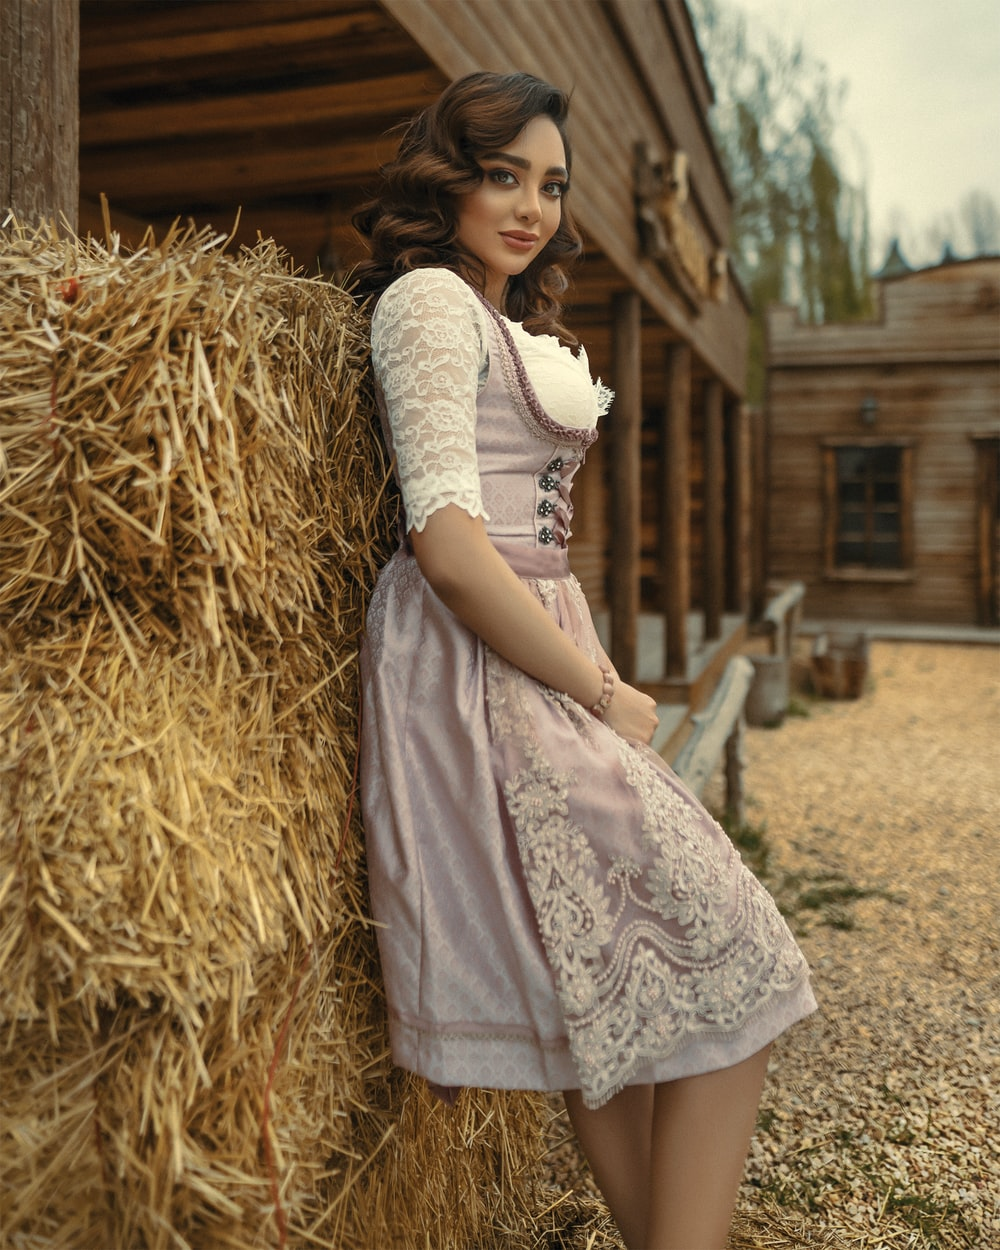 girl in white dress sitting on brown hay